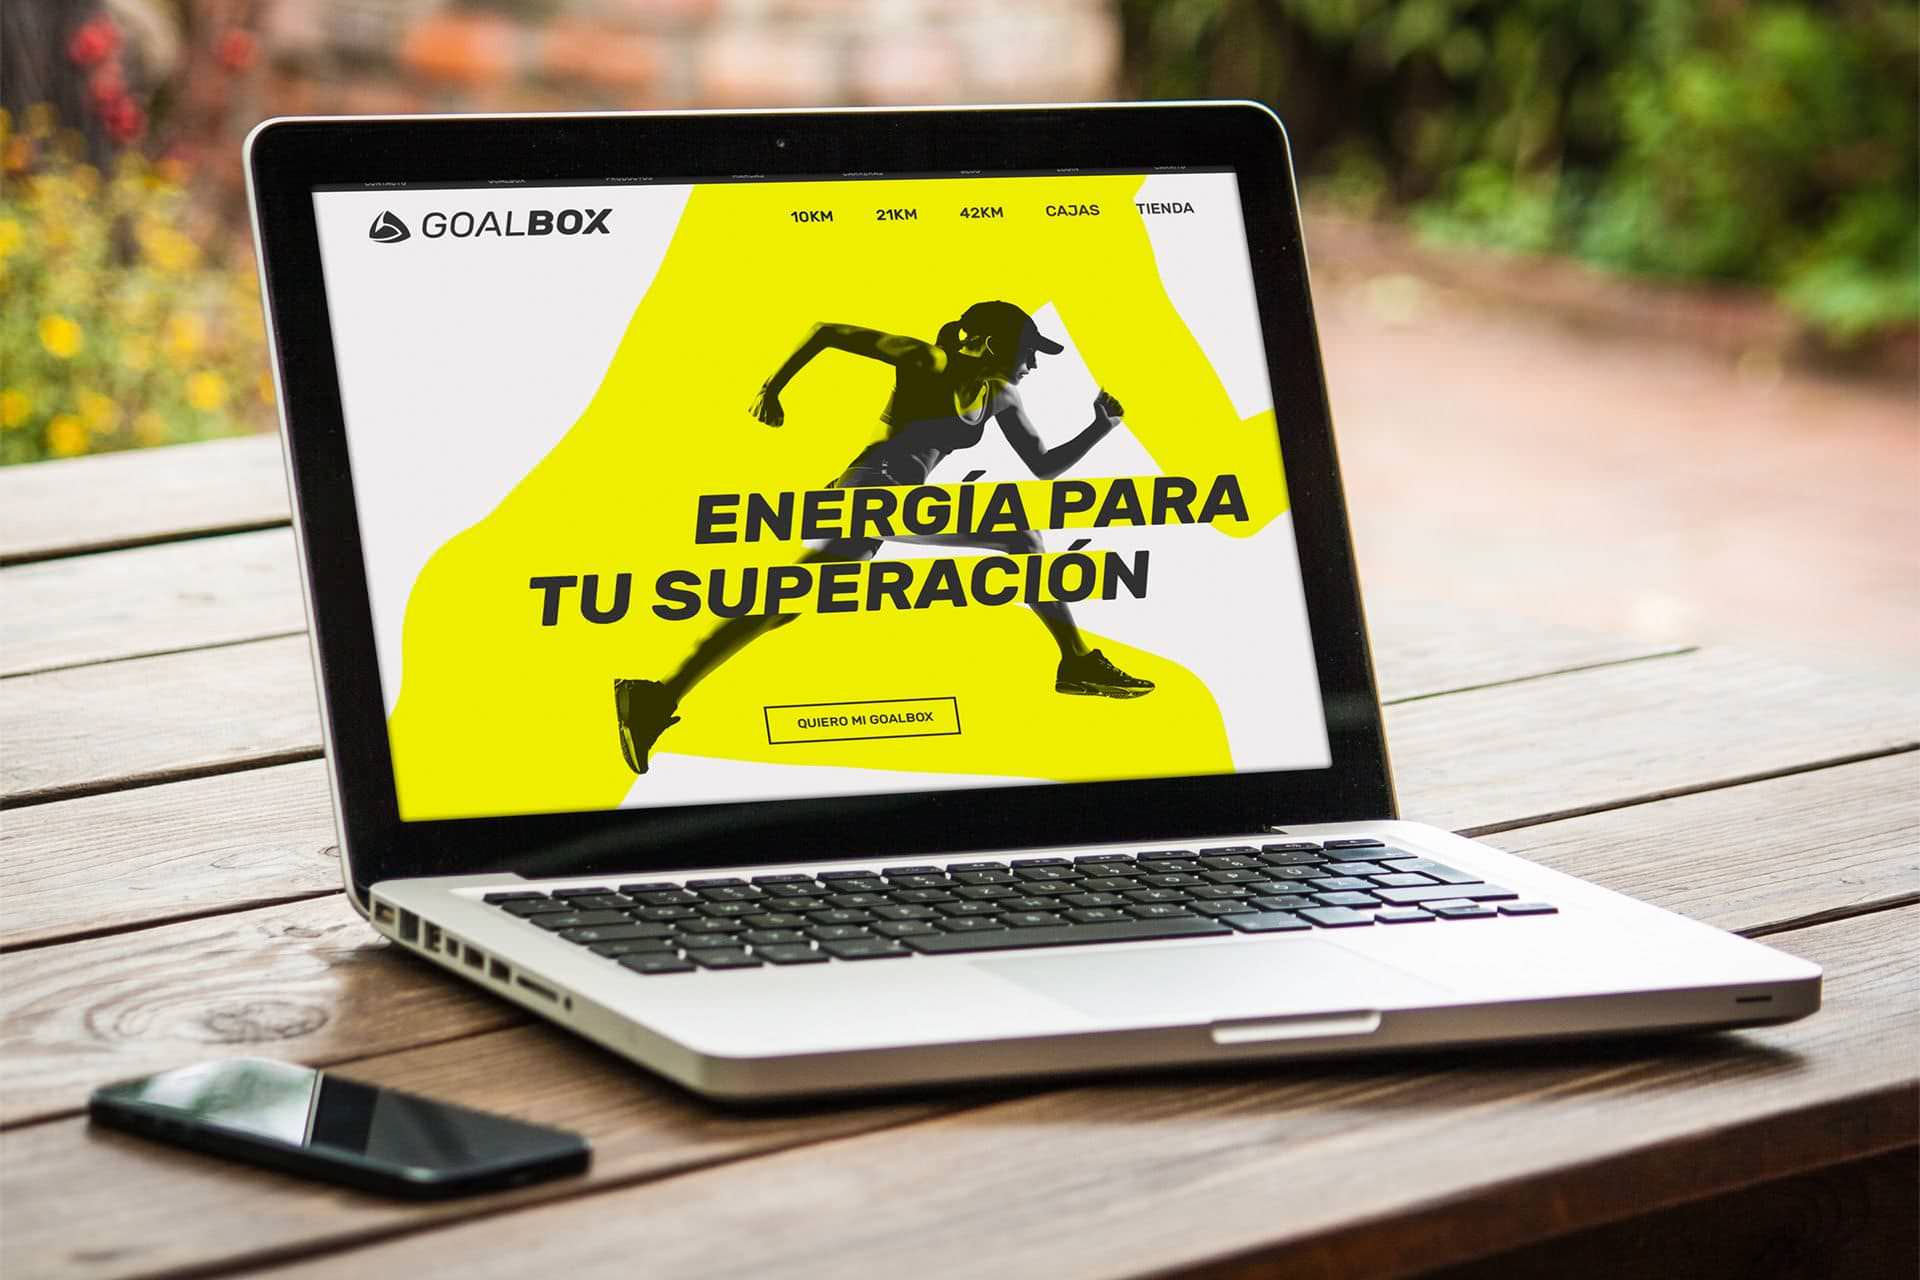 Laptop mostrando la web de Goalbox